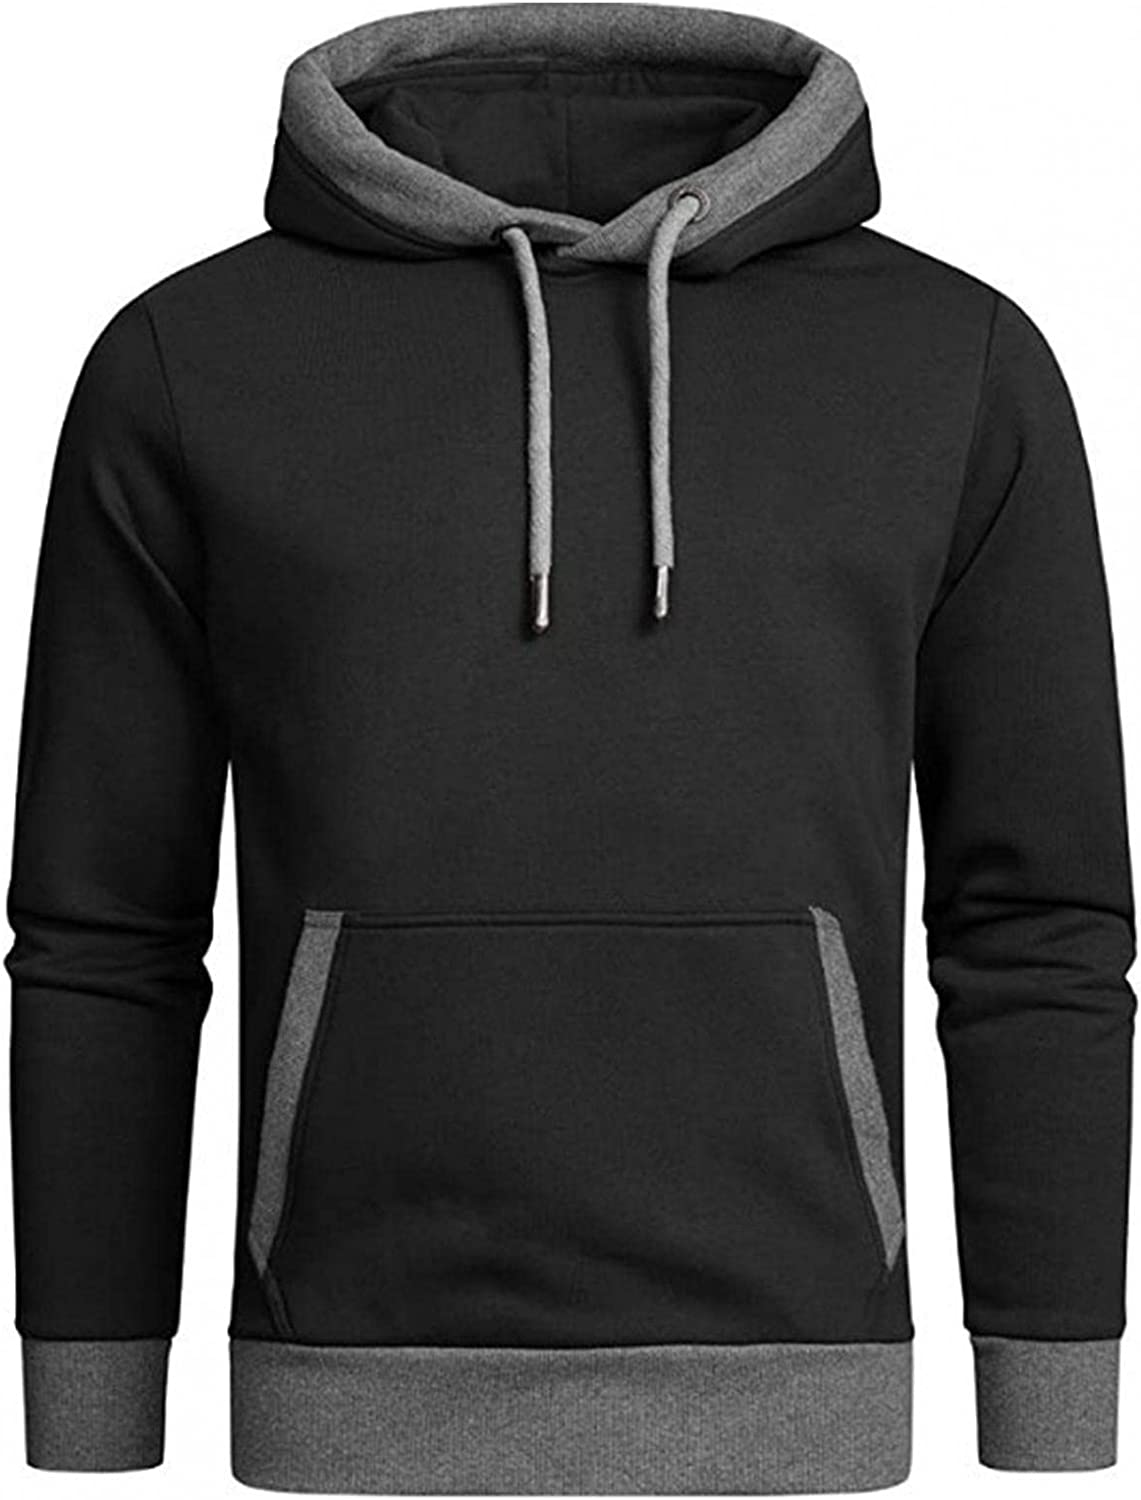 Aayomet Men's Hoodies Sweatshirts Fashion Color Block Tops Long Sleeve Casual Workout Hooded Pullover Shirts Blouses for Men